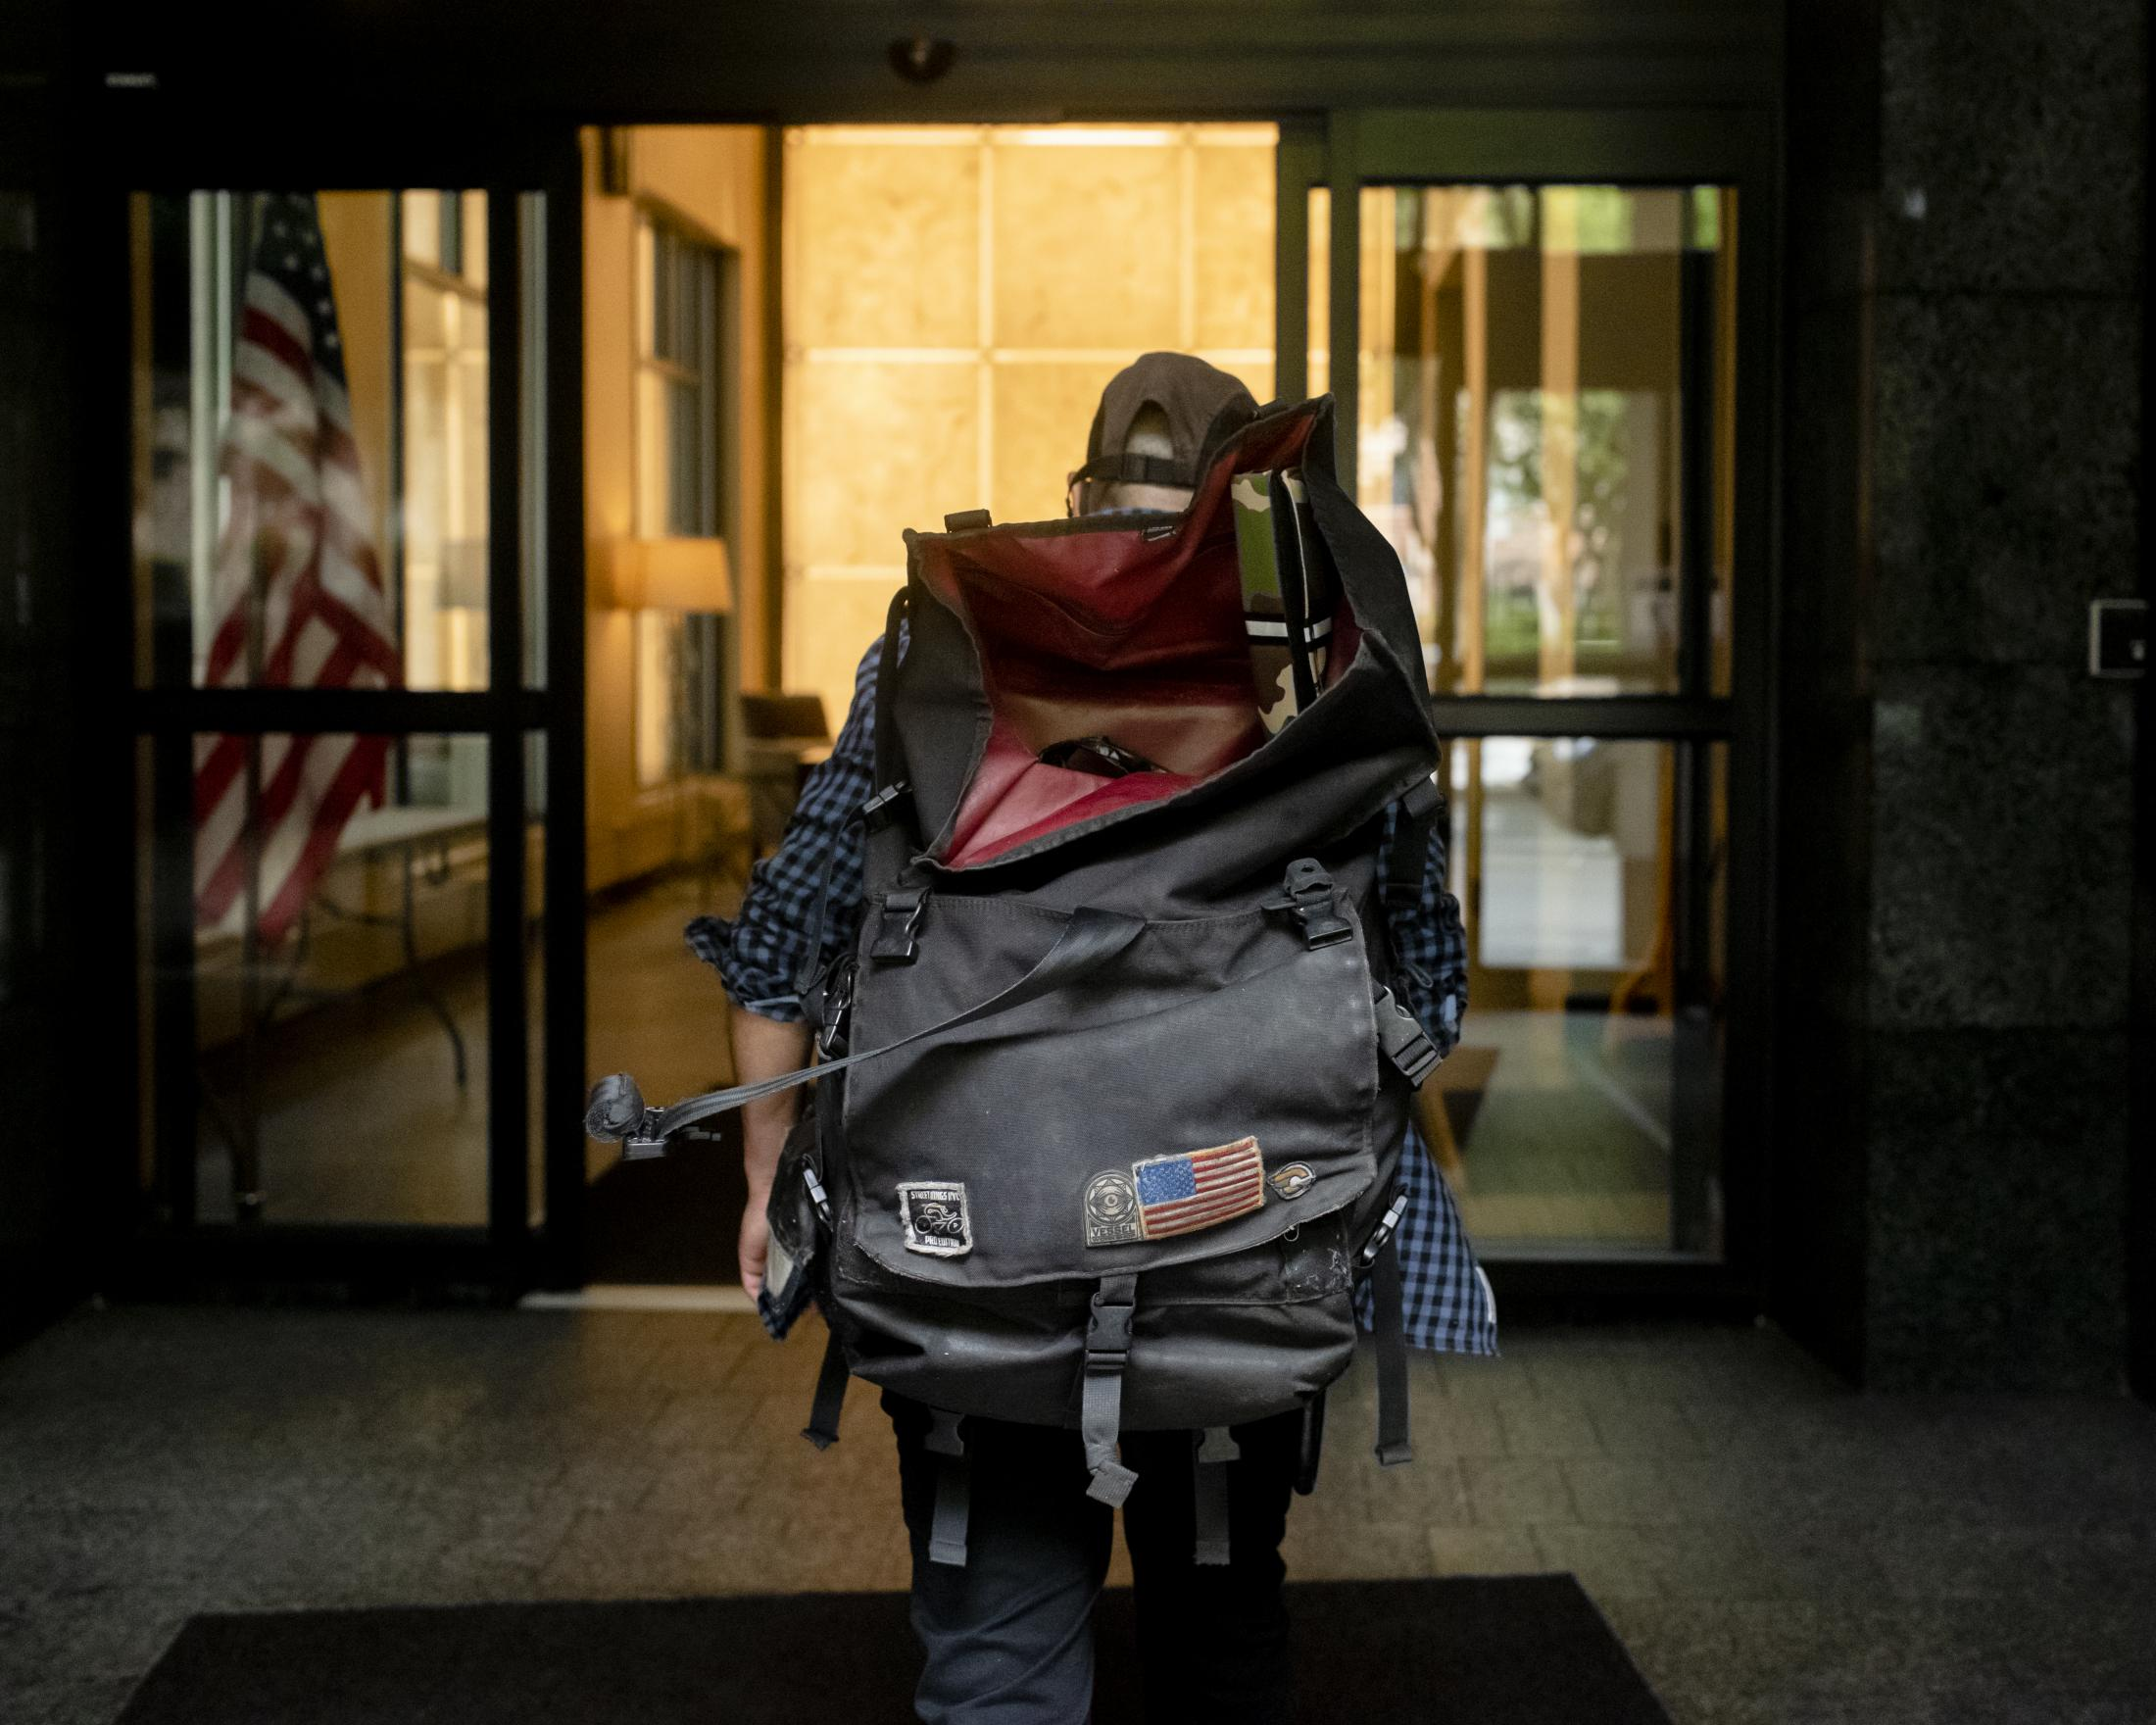 Carlos, an Uruguayan food delivery worker, entering a building in Wall Street, Manhattan. Carlos lives as an illegal immigrant in the state of New Jersey and commutes every day to work for an Italian restaurant, with almost zero protection either from the restaurant or the mobile food apps.